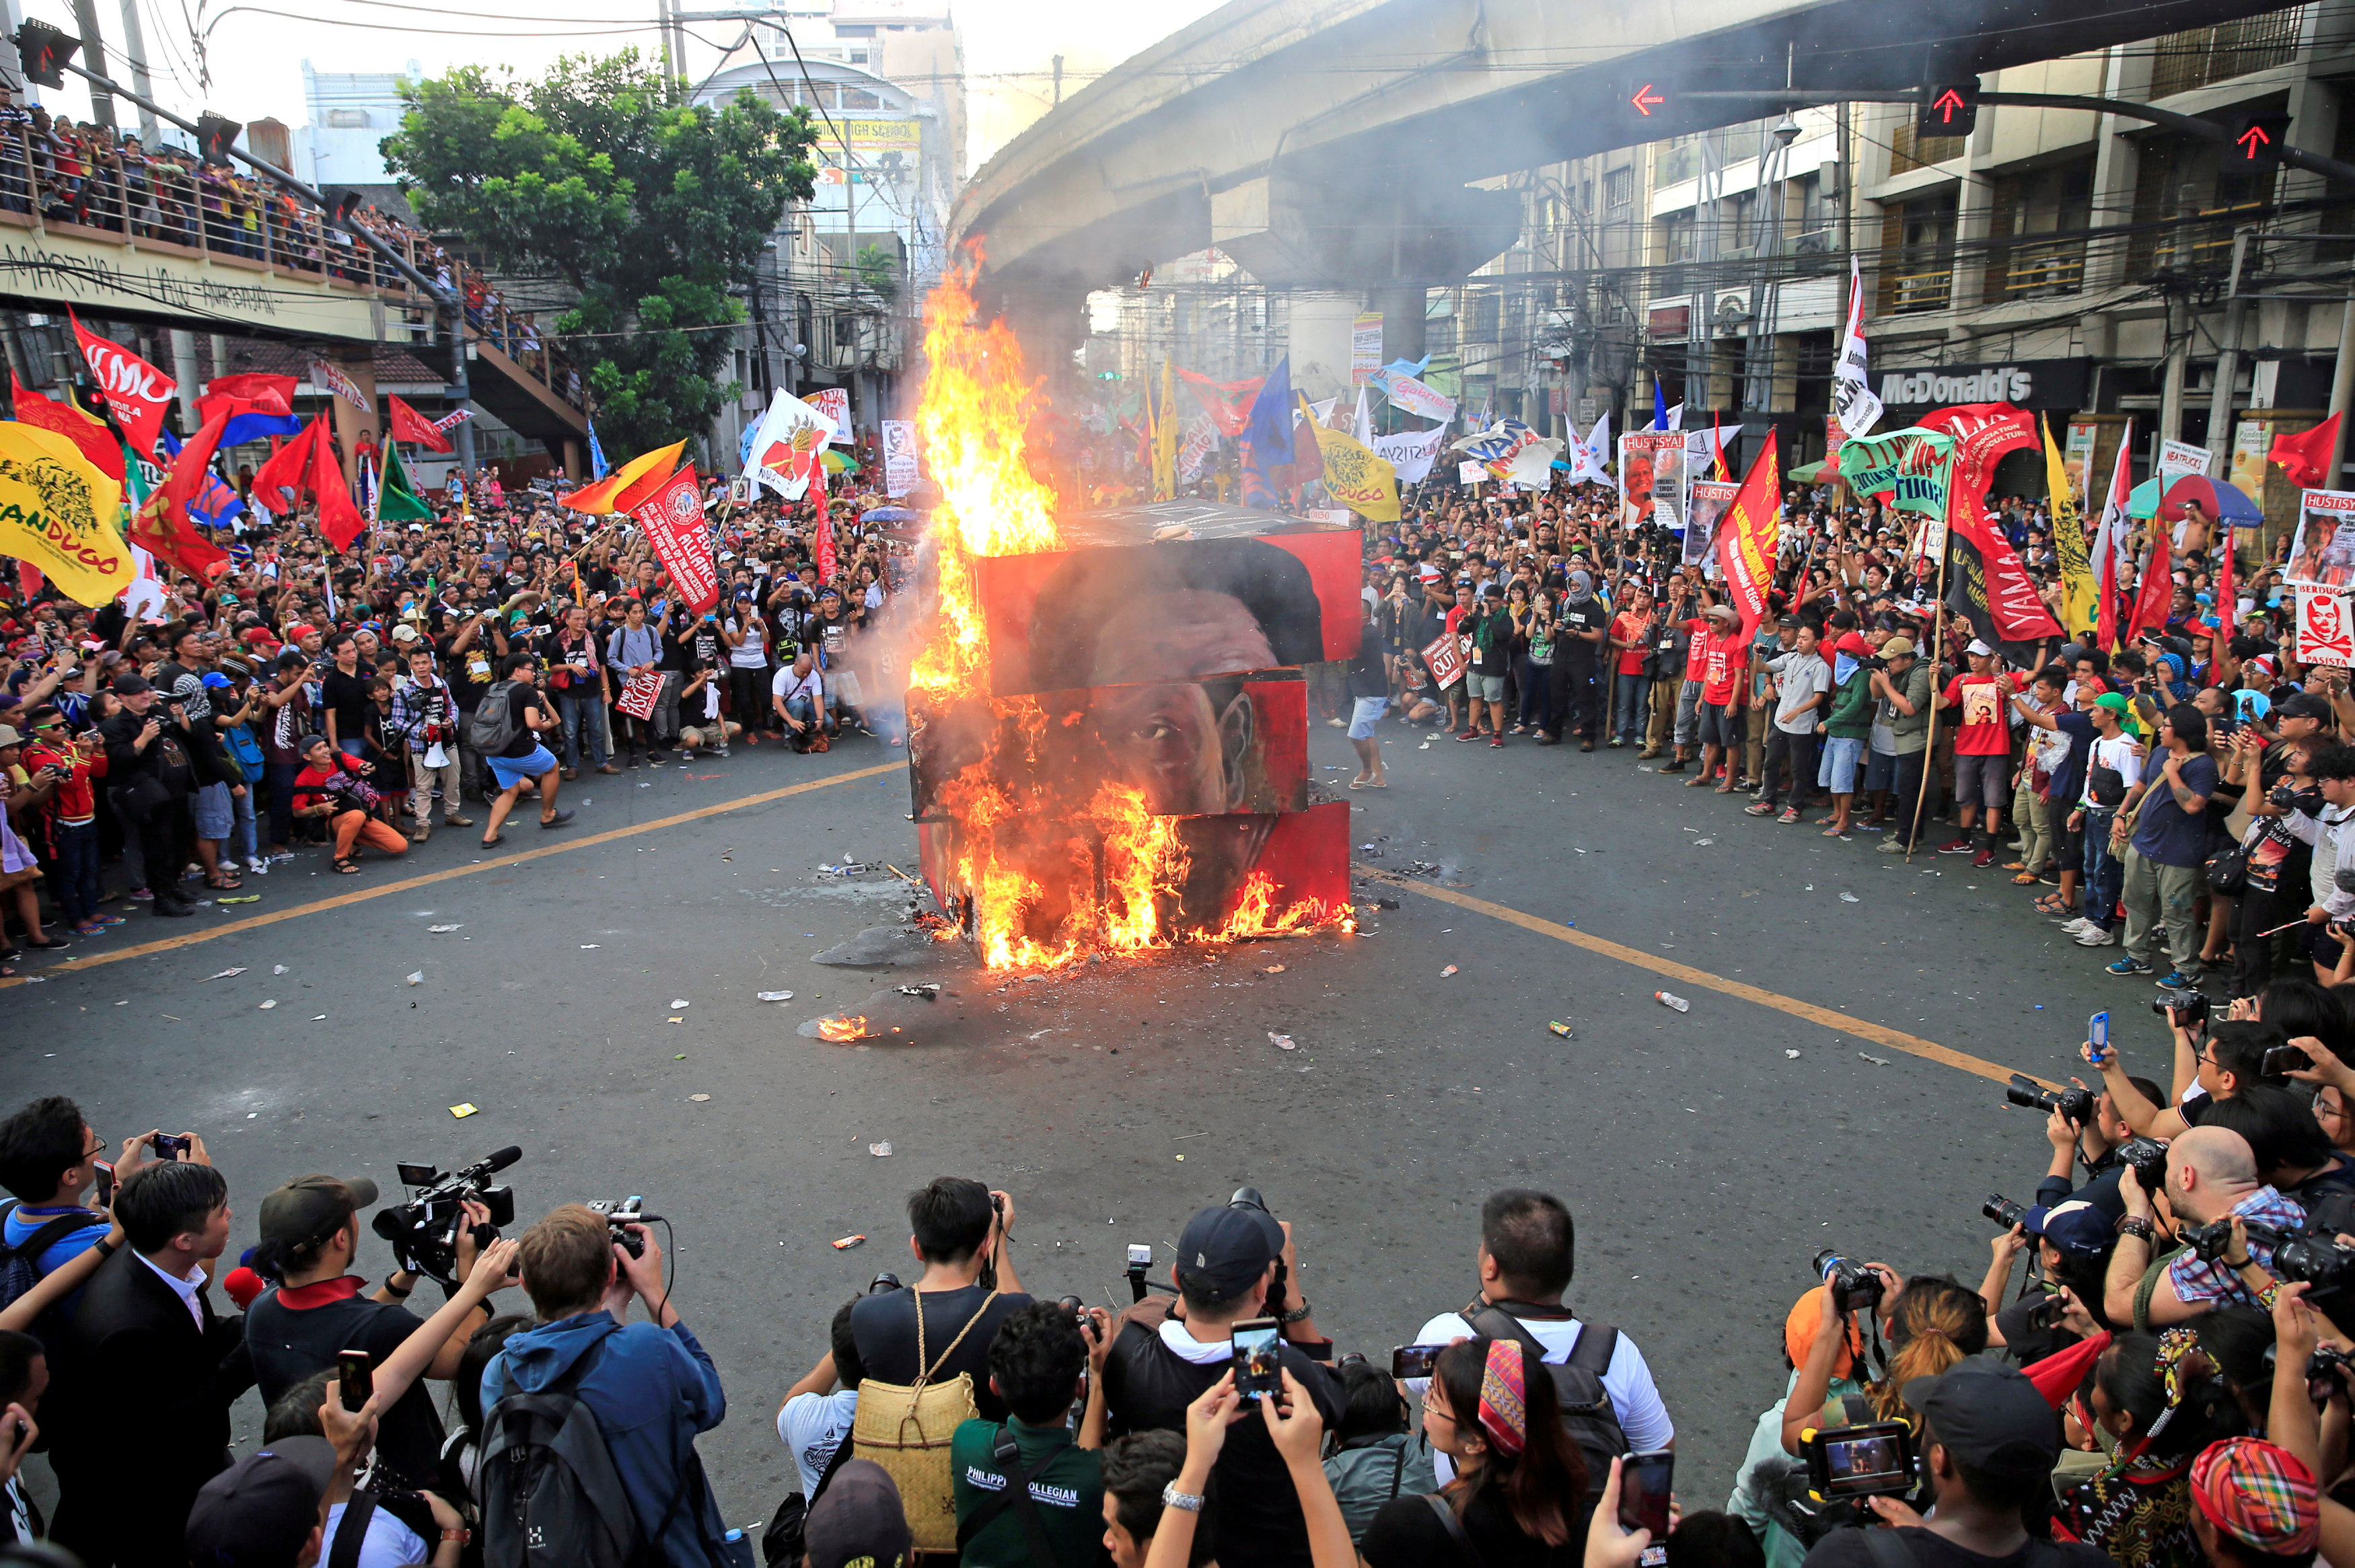 Protesters burn a cube effigy with a face of President Rodrigo Duterte during a National Day of Protest outside the presidential palace in metro Manila, Philippines September 21, 2017. REUTERS/Romeo Ranoco